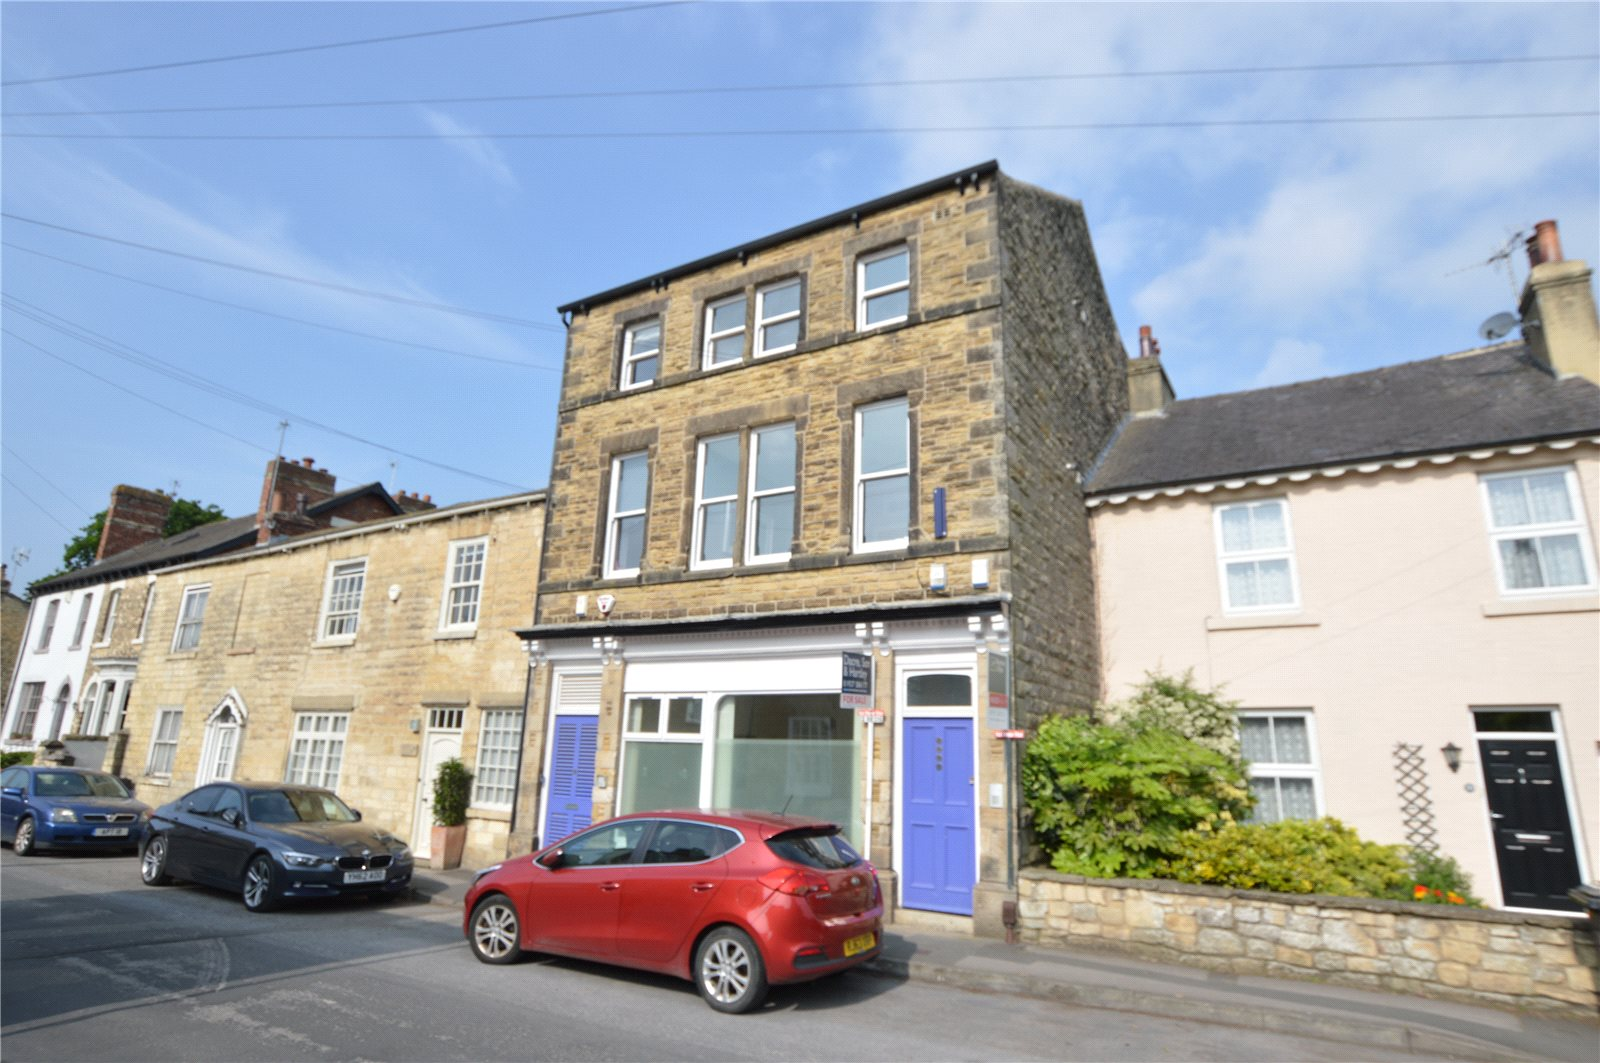 property for sale in Wetherby, Flat exterior.